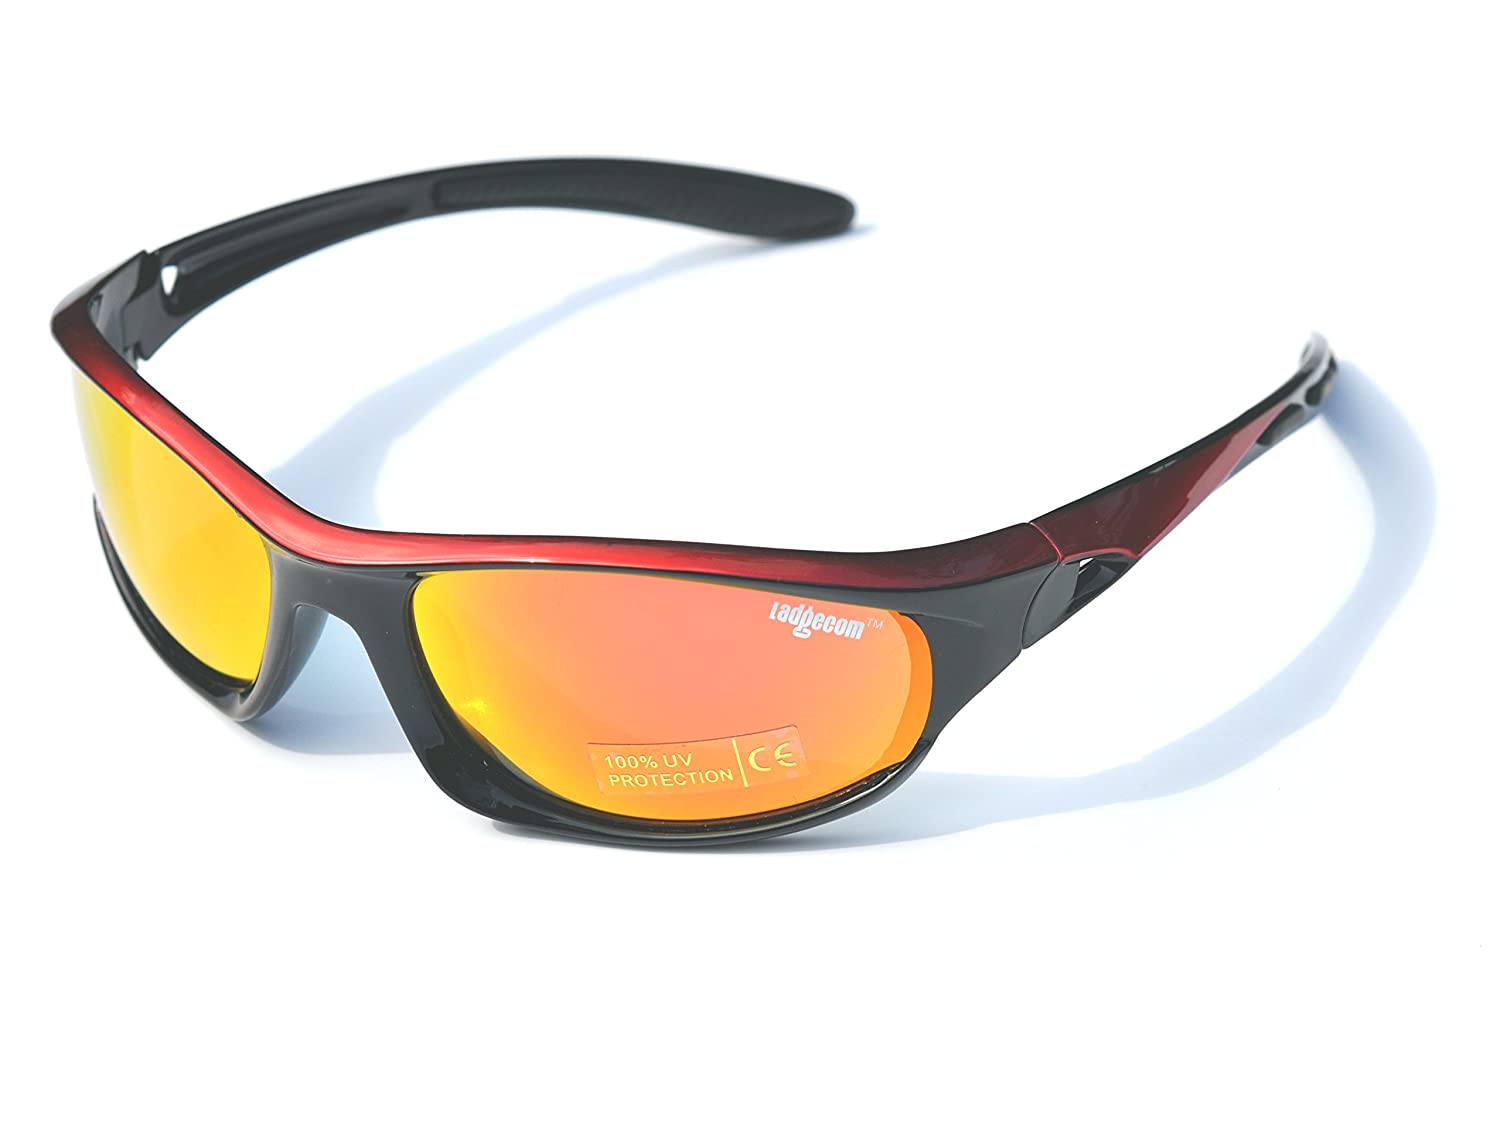 2f1c429a30bd Ladgecom Red   Black Polarised Sports Sunglasses with Revo Lens and Hard  Case  Amazon.co.uk  Sports   Outdoors